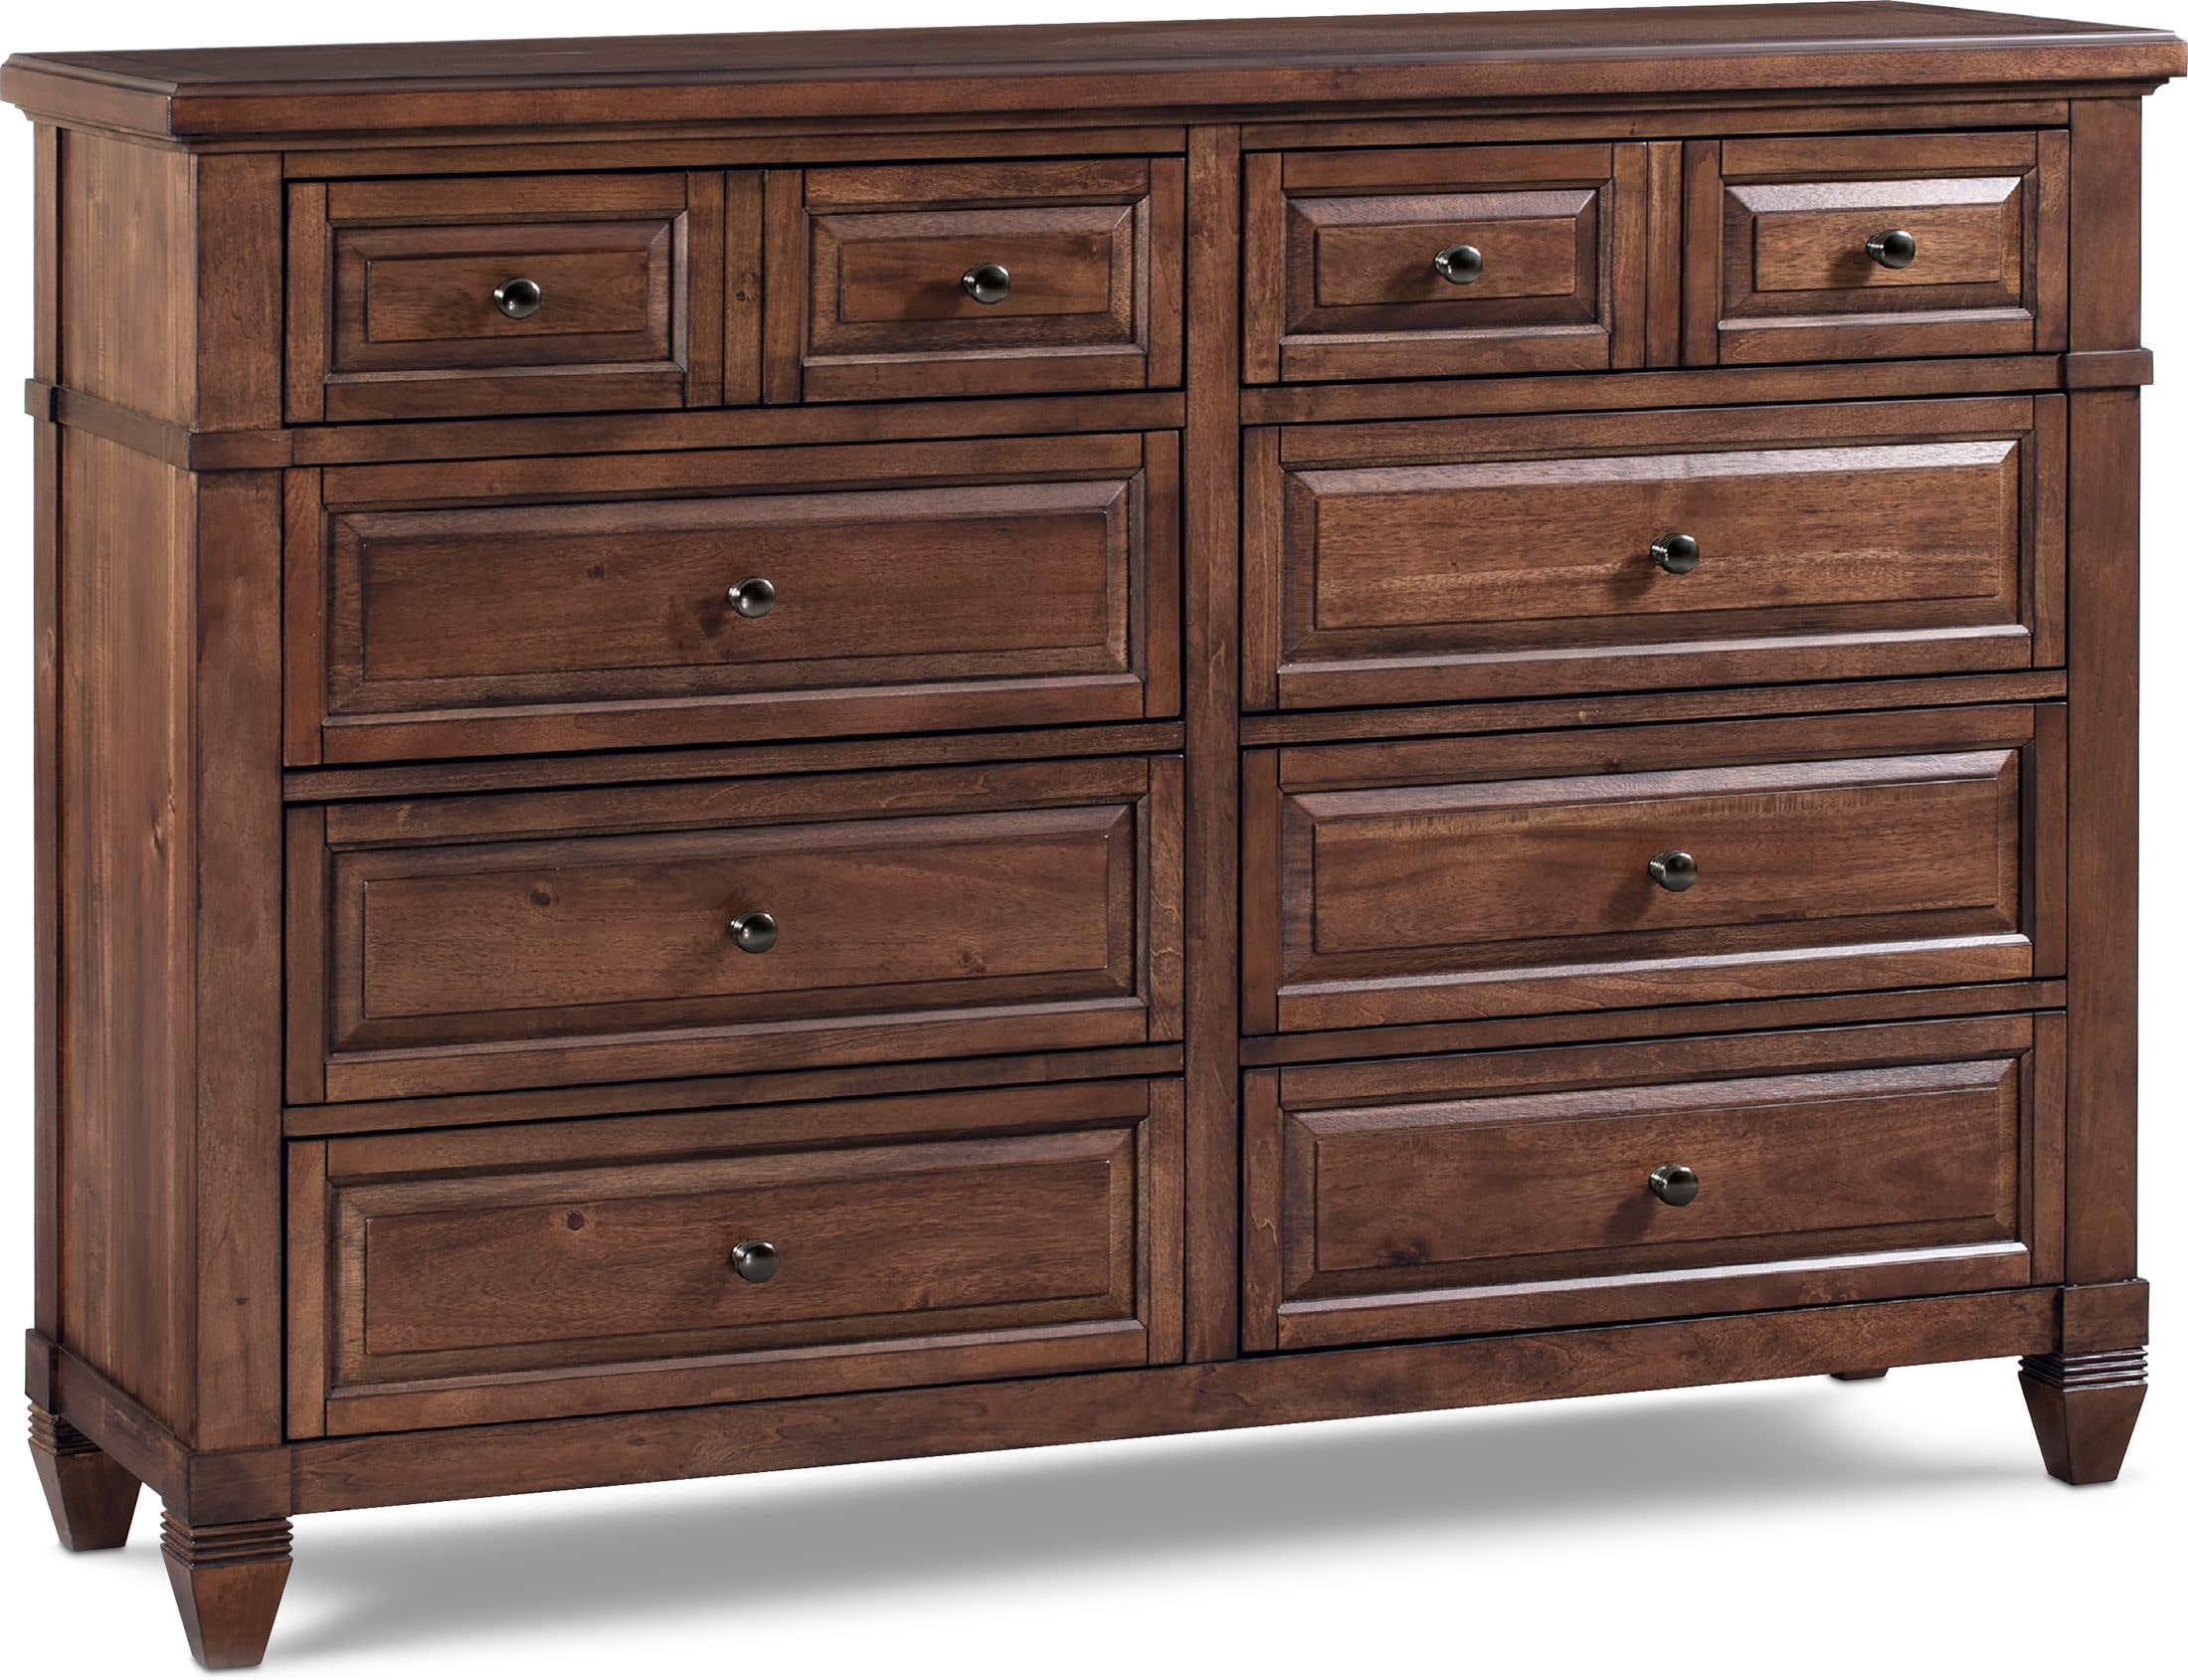 Bedroom Furniture - Rosalie Dresser